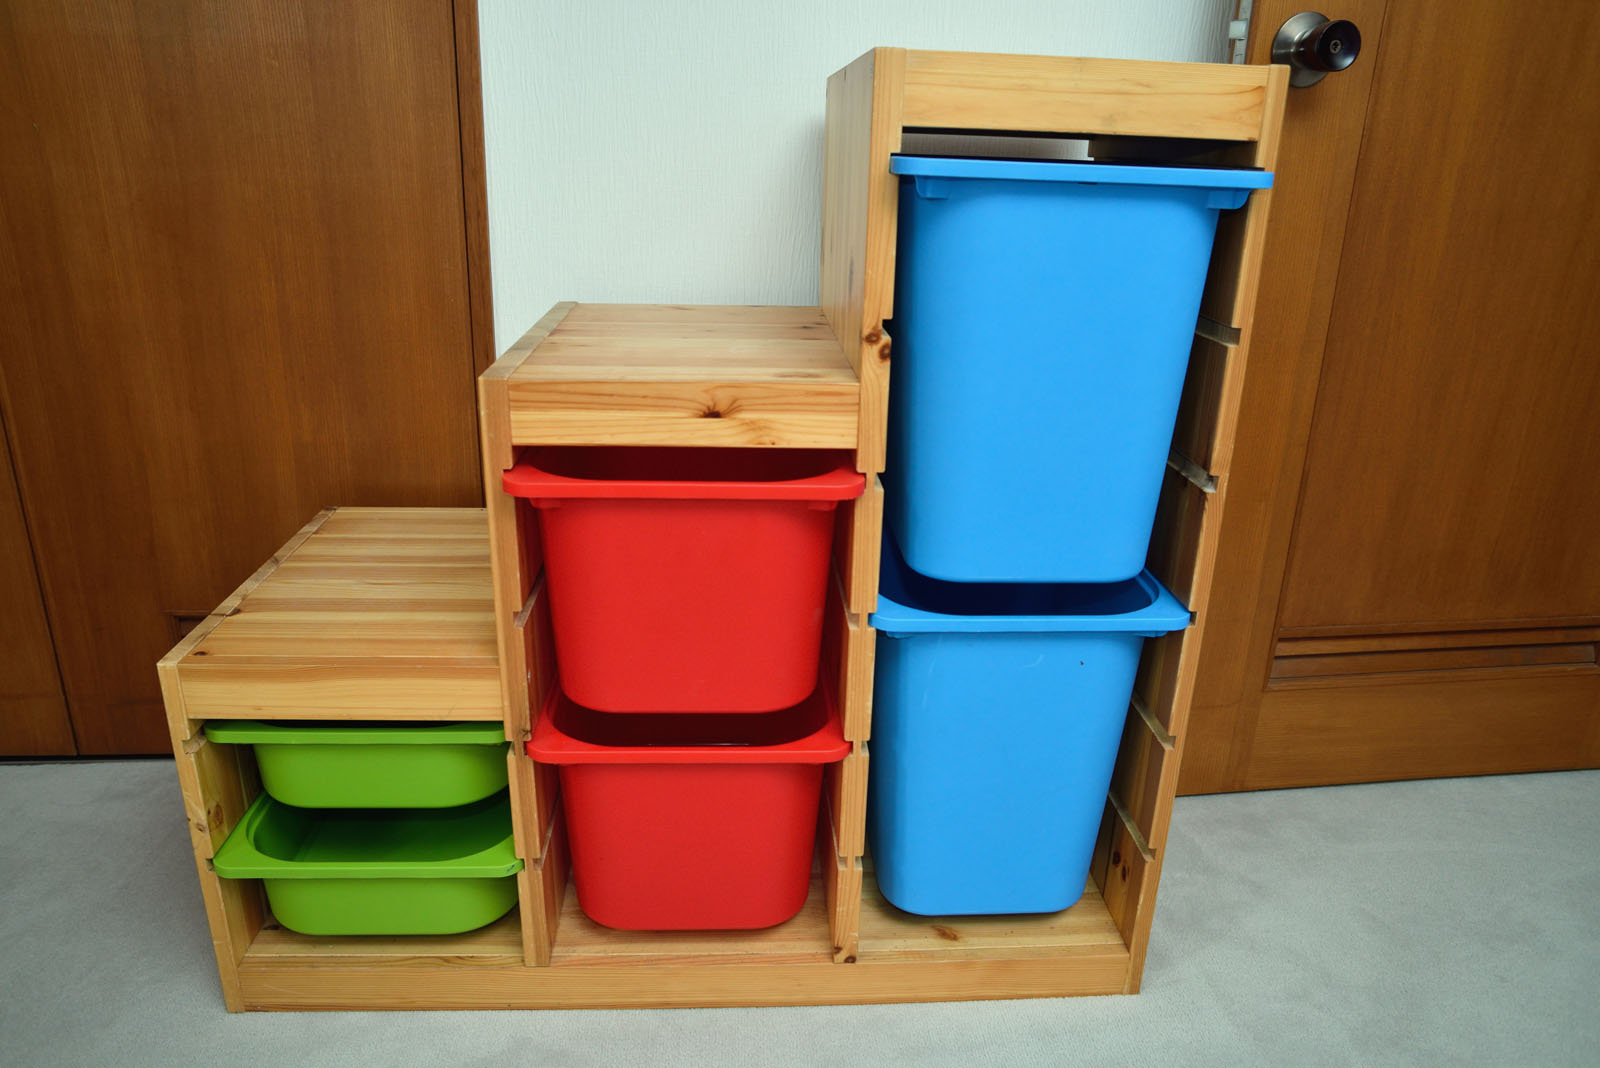 We are asking ¥6000 for the Ikea TROFAST Pine Storage Frame with Multi-Color Bins. & 4-Sale-Akasaka: Ikea TROFAST Pine Storage Frame with Multi-Color ...